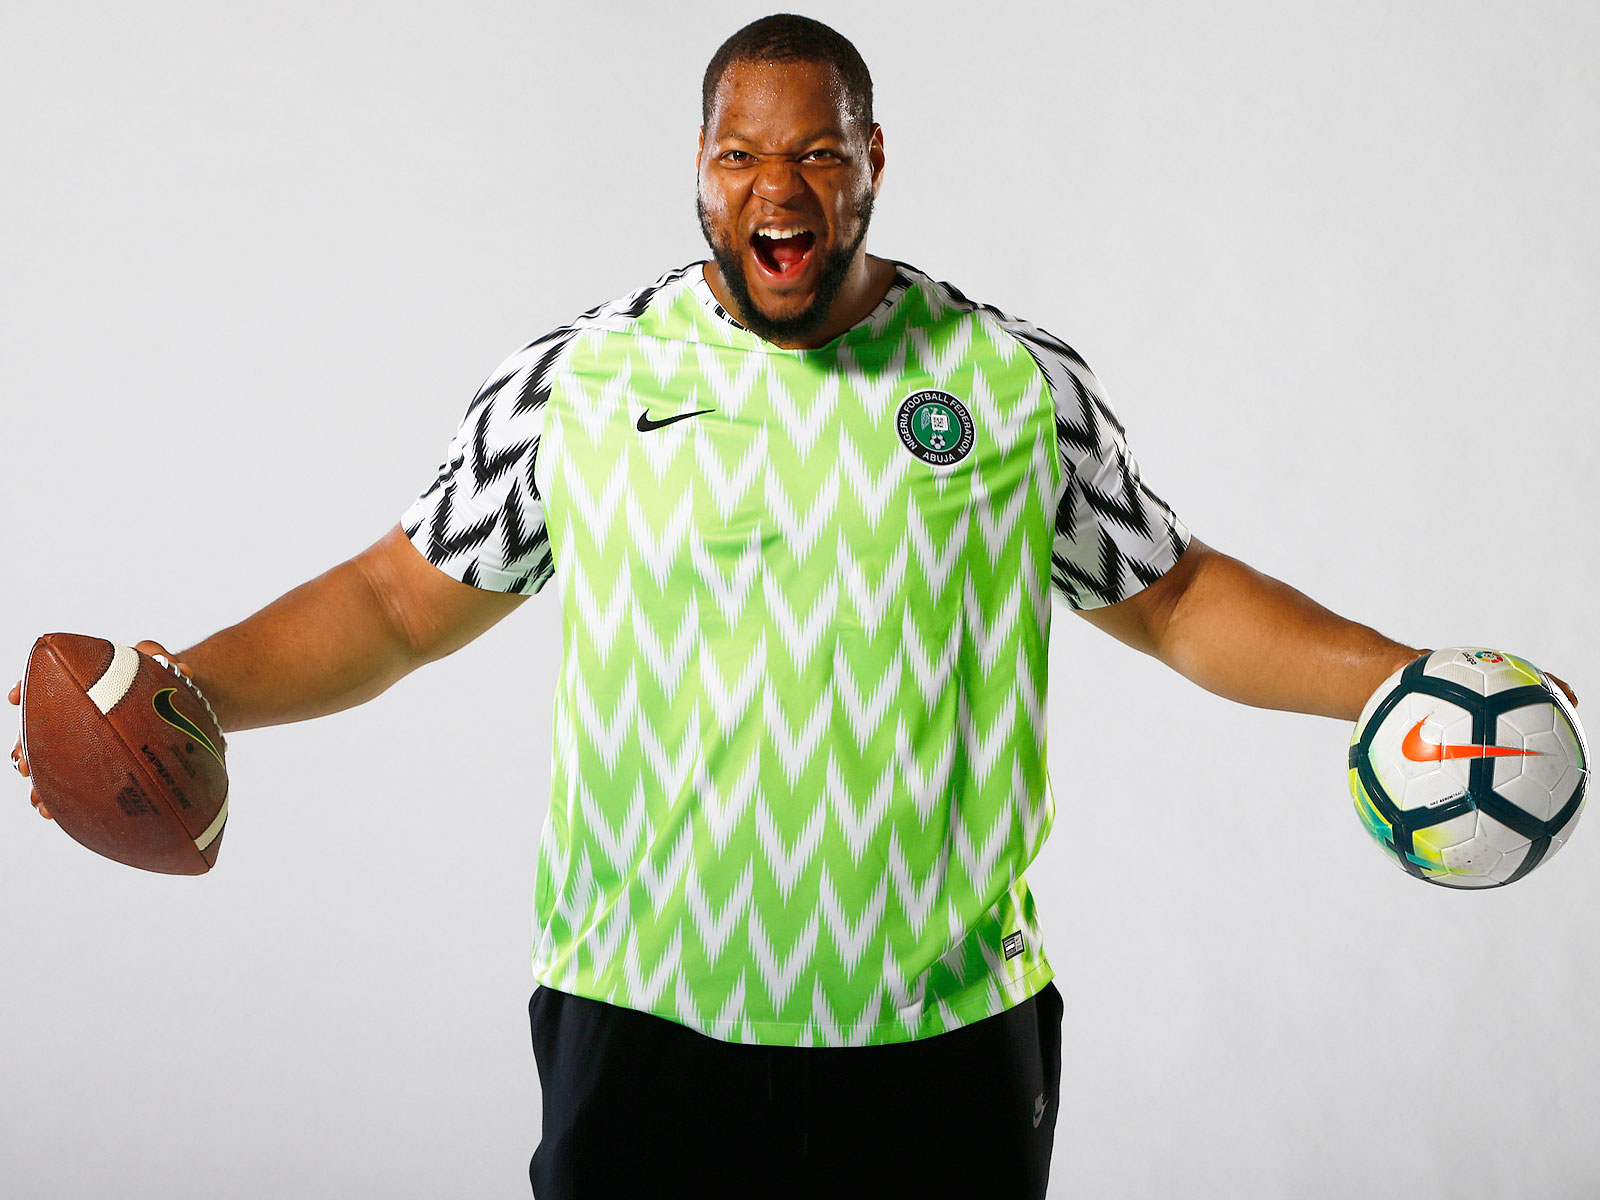 Ndamukong Suh is supporting Nigeria at the World Cup